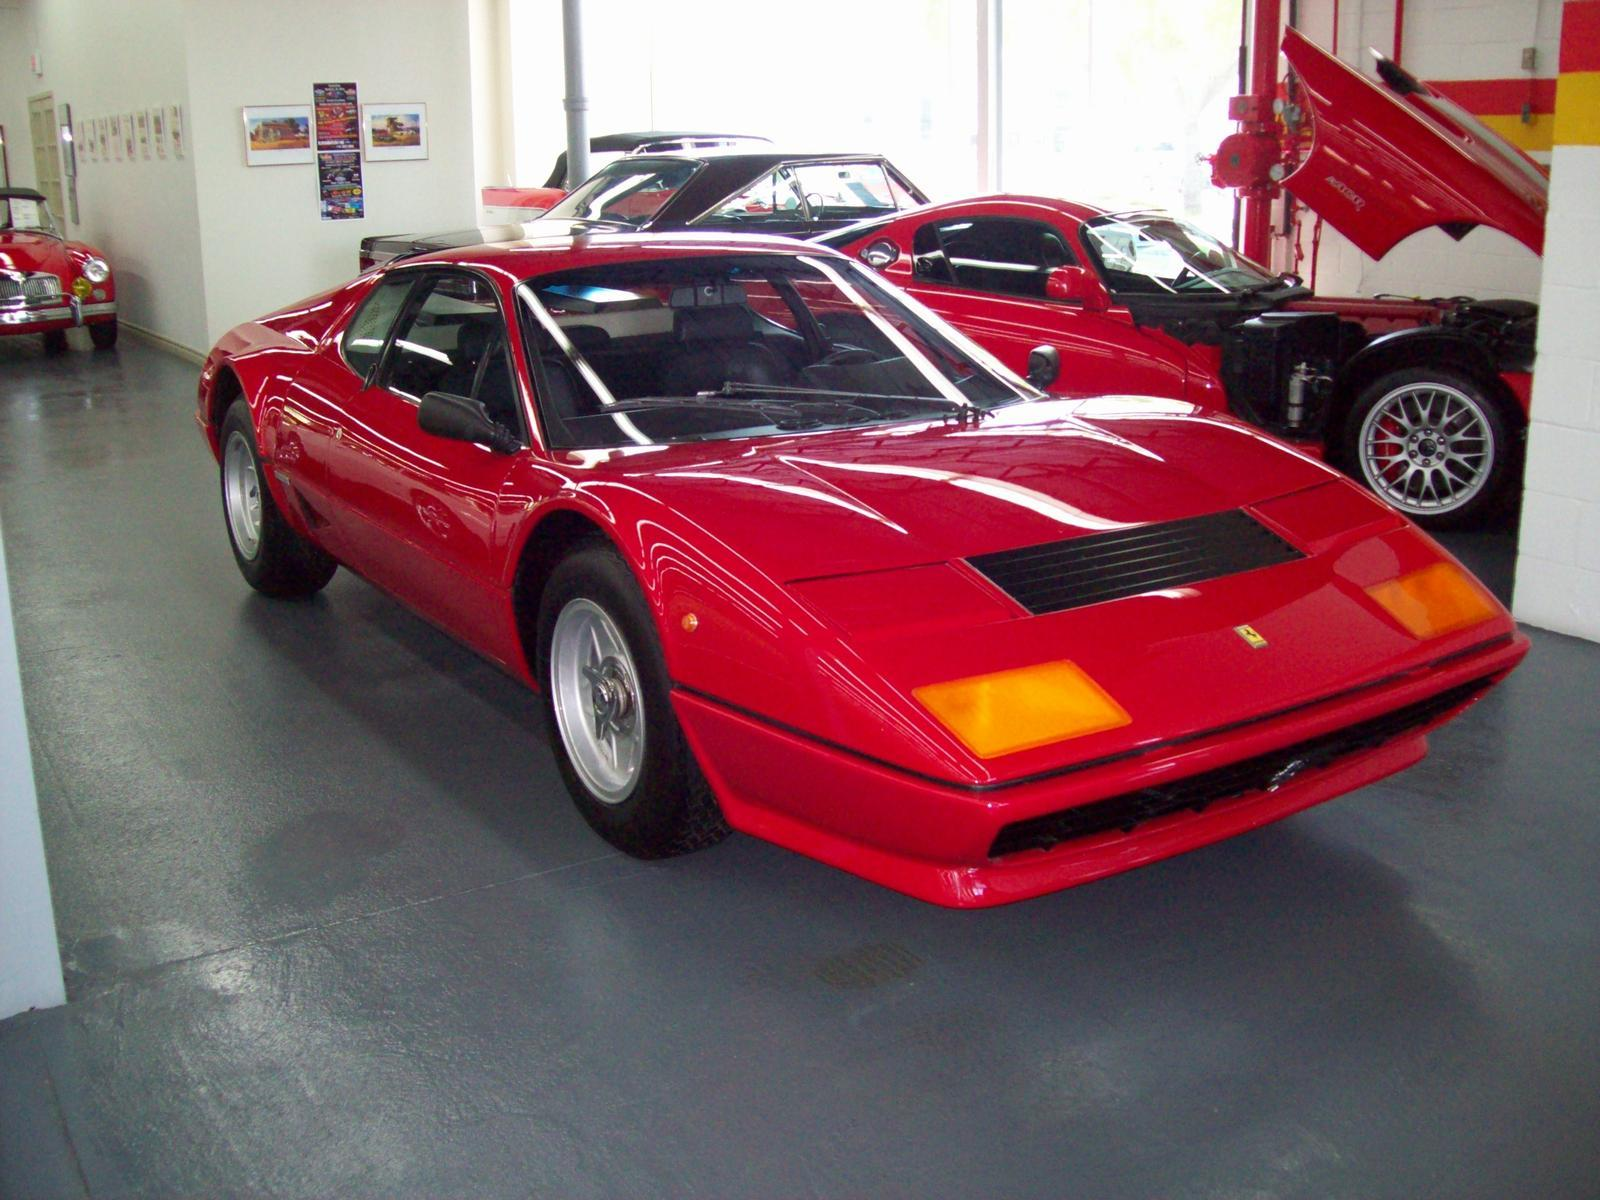 inventory js leonard sale john testarossa saint ca used classic en cars for ferrari in scotti montreal